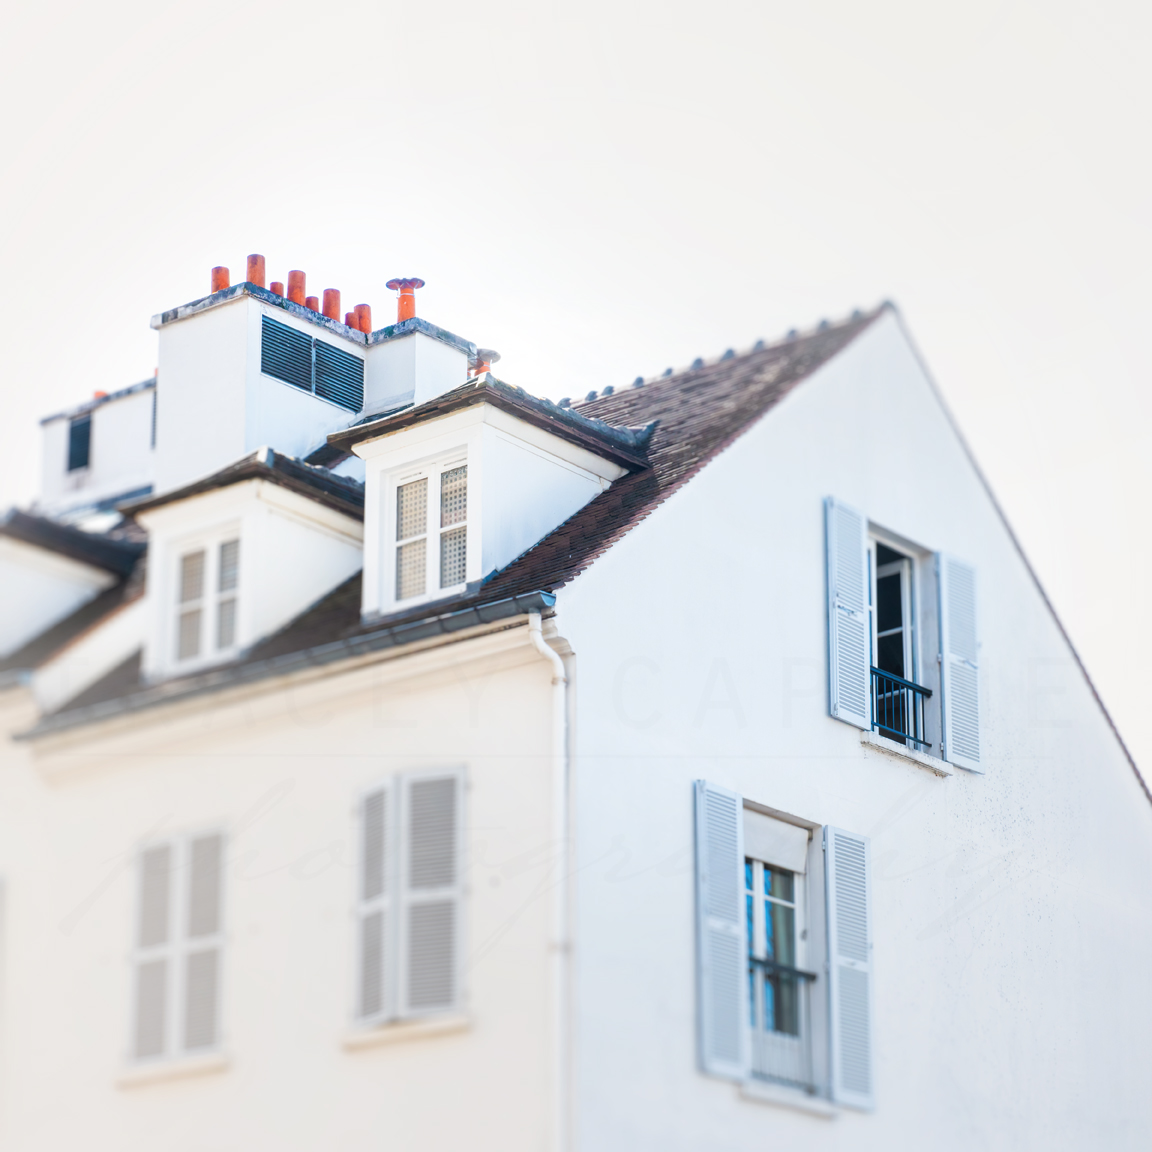 White house with orange chimney stacks in Montmartre Paris by Tracey Capone